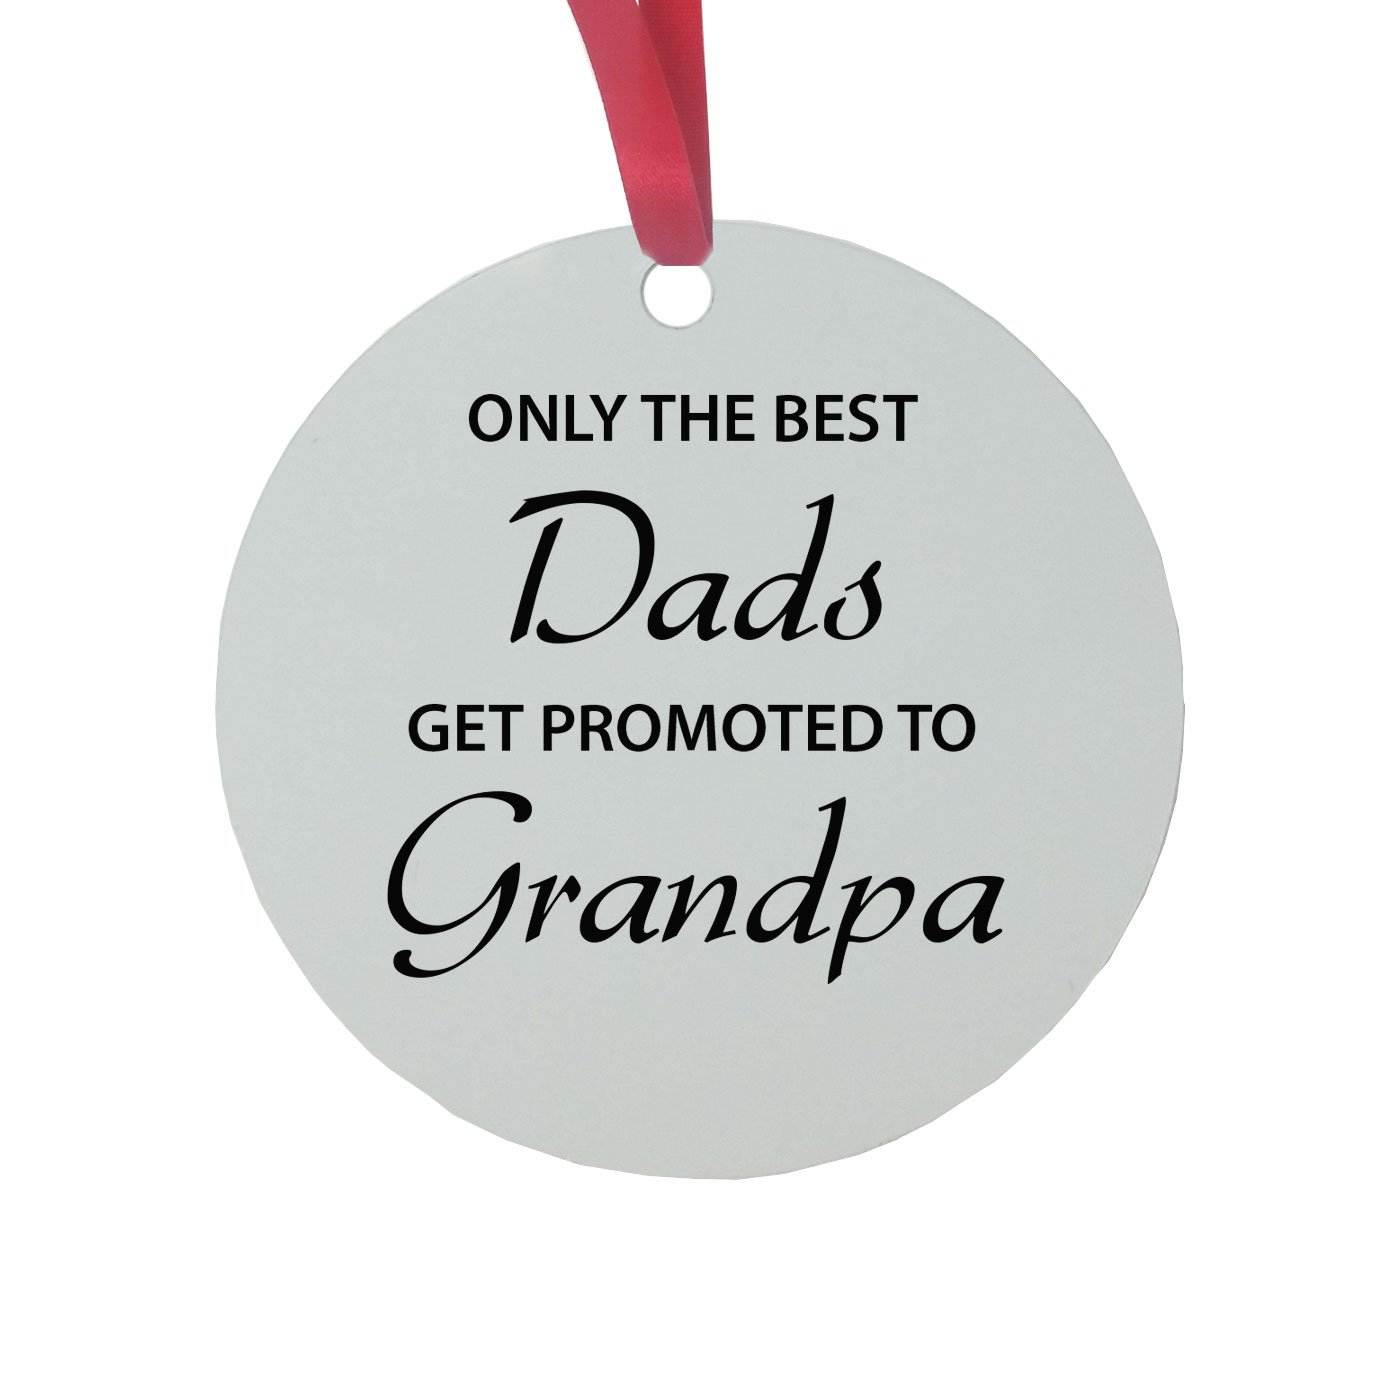 Only the Best Dads Get Promoted to Grandpa 3-inch White Glossy Aluminum Christmas Ornament with Red Ribbon CustomGiftsNow